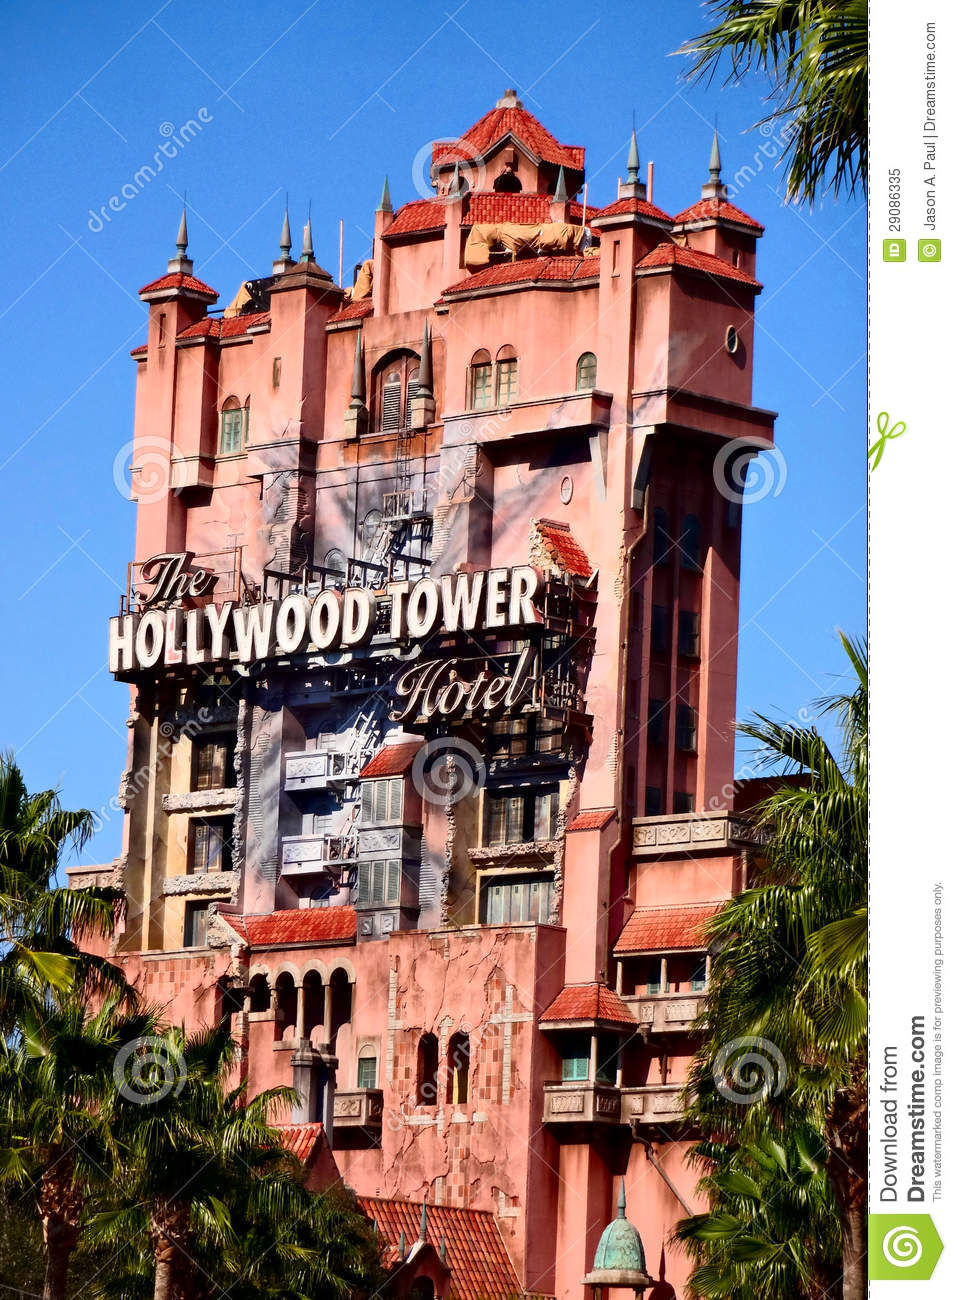 The Twilight Zone Tower Of Terror At Disney's Hollywood Studios.